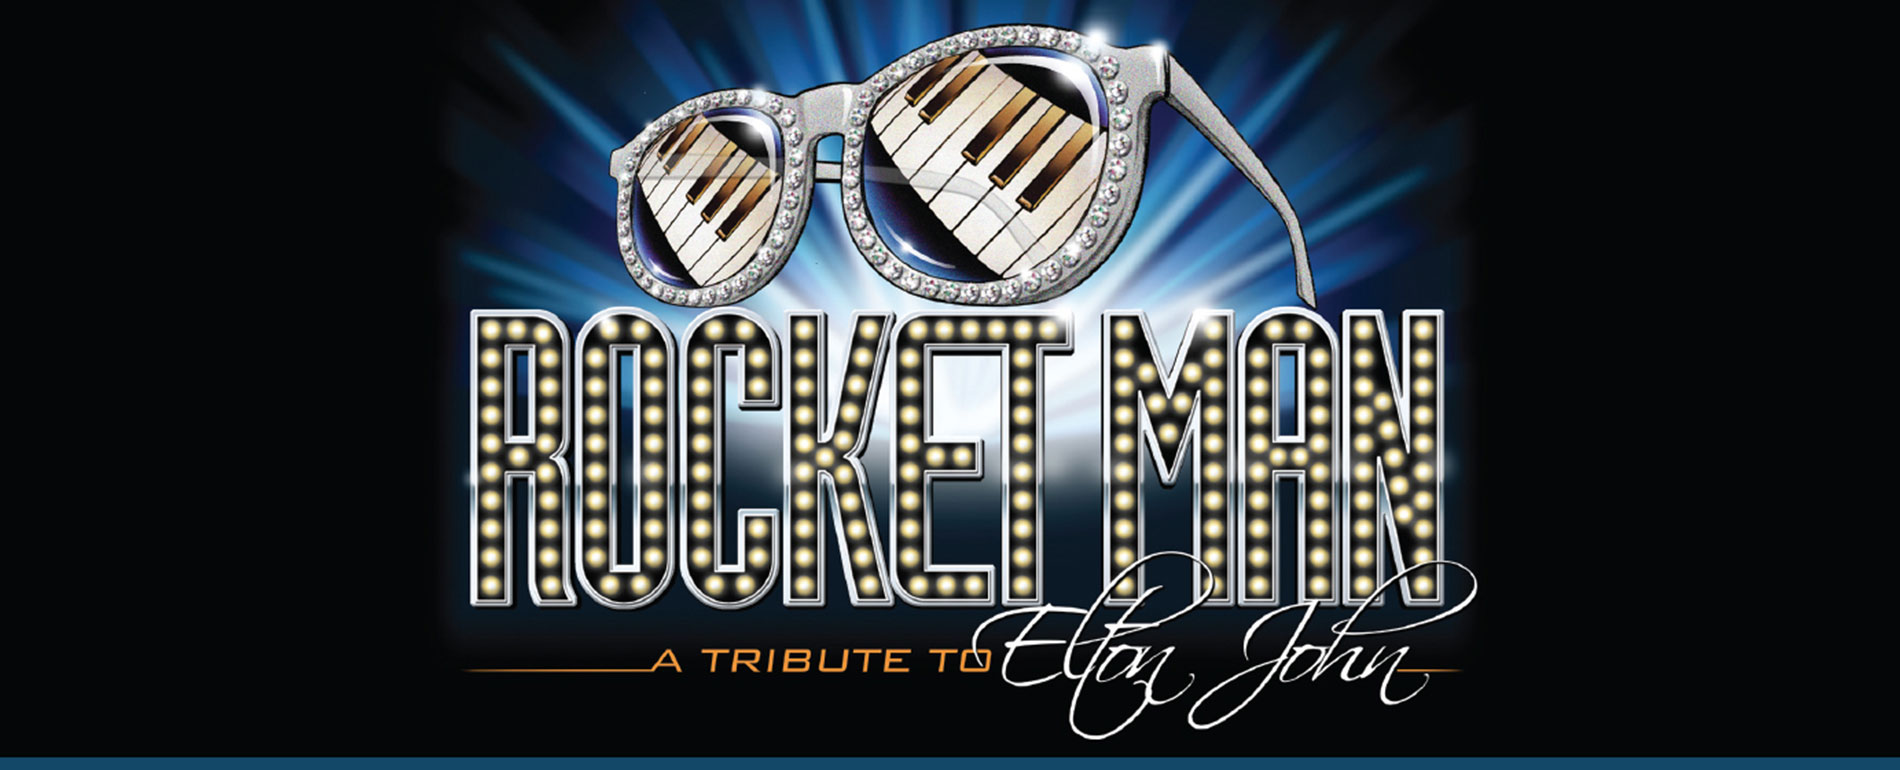 poconos event - rocketman a tribute to elton john